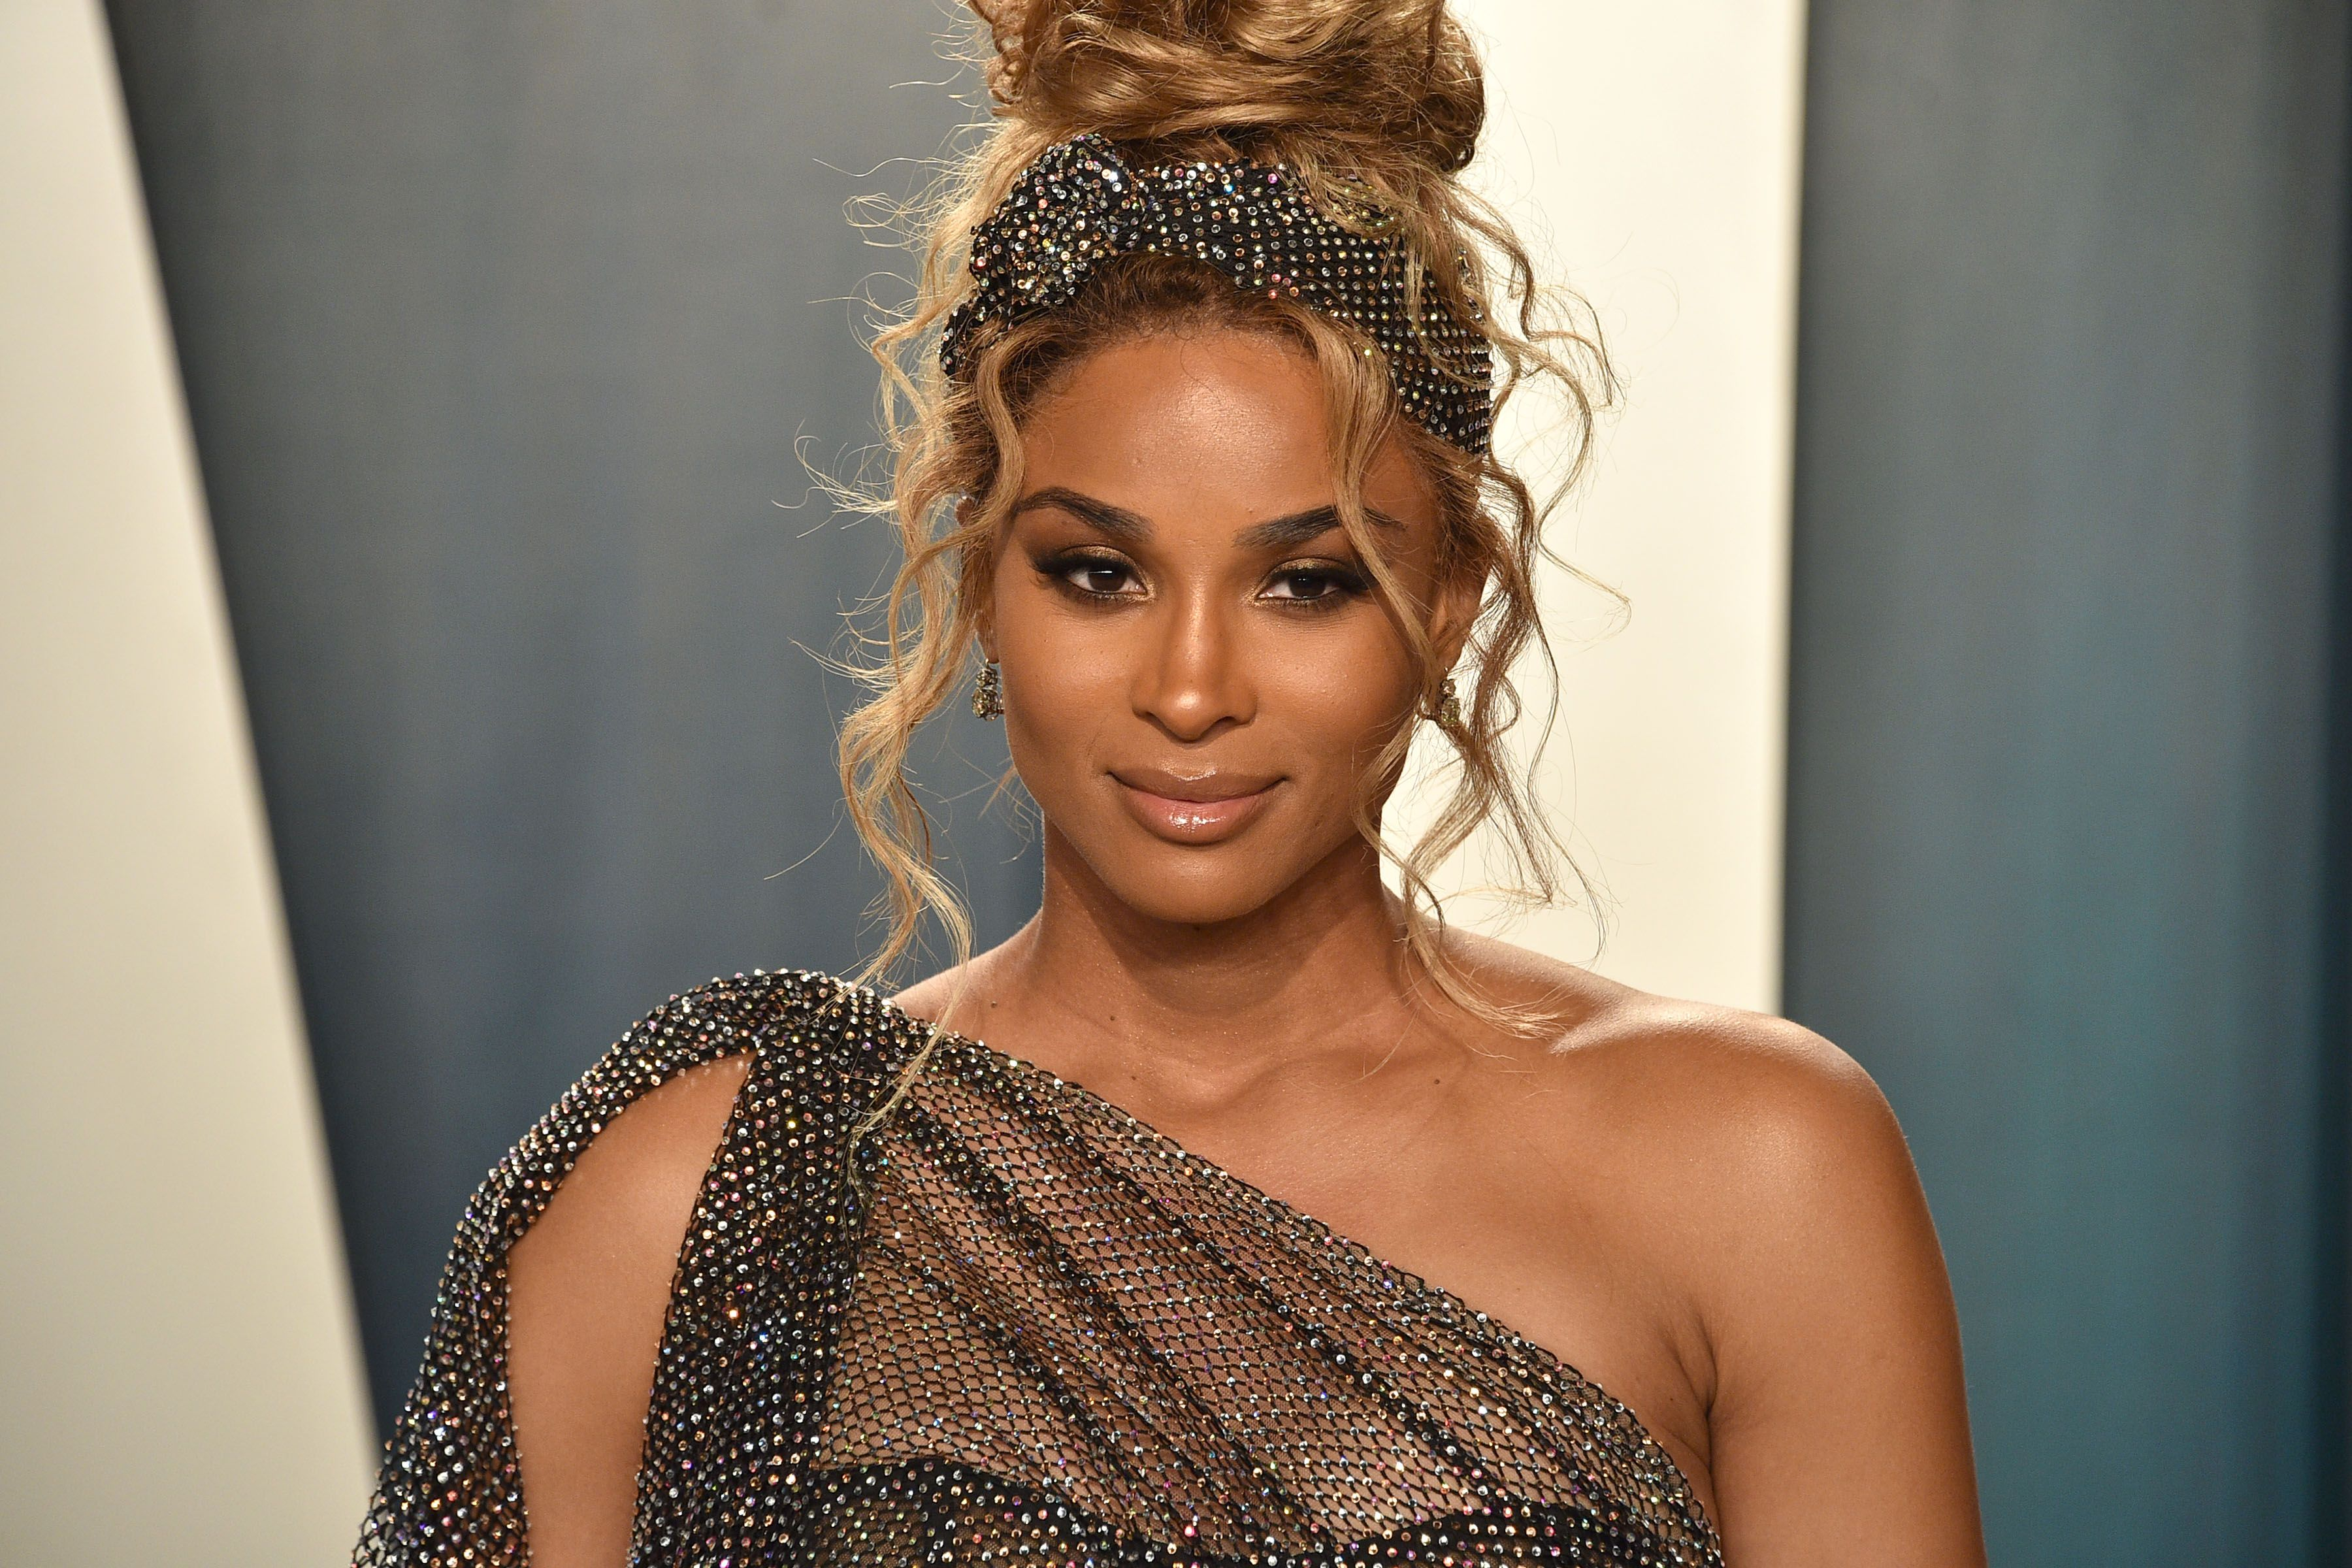 Ciara at the 2020 Vanity Fair Oscar Party at Wallis Annenberg Center for the Performing Arts on February 09, 2020 in Beverly Hills, California | Photo: Getty Images